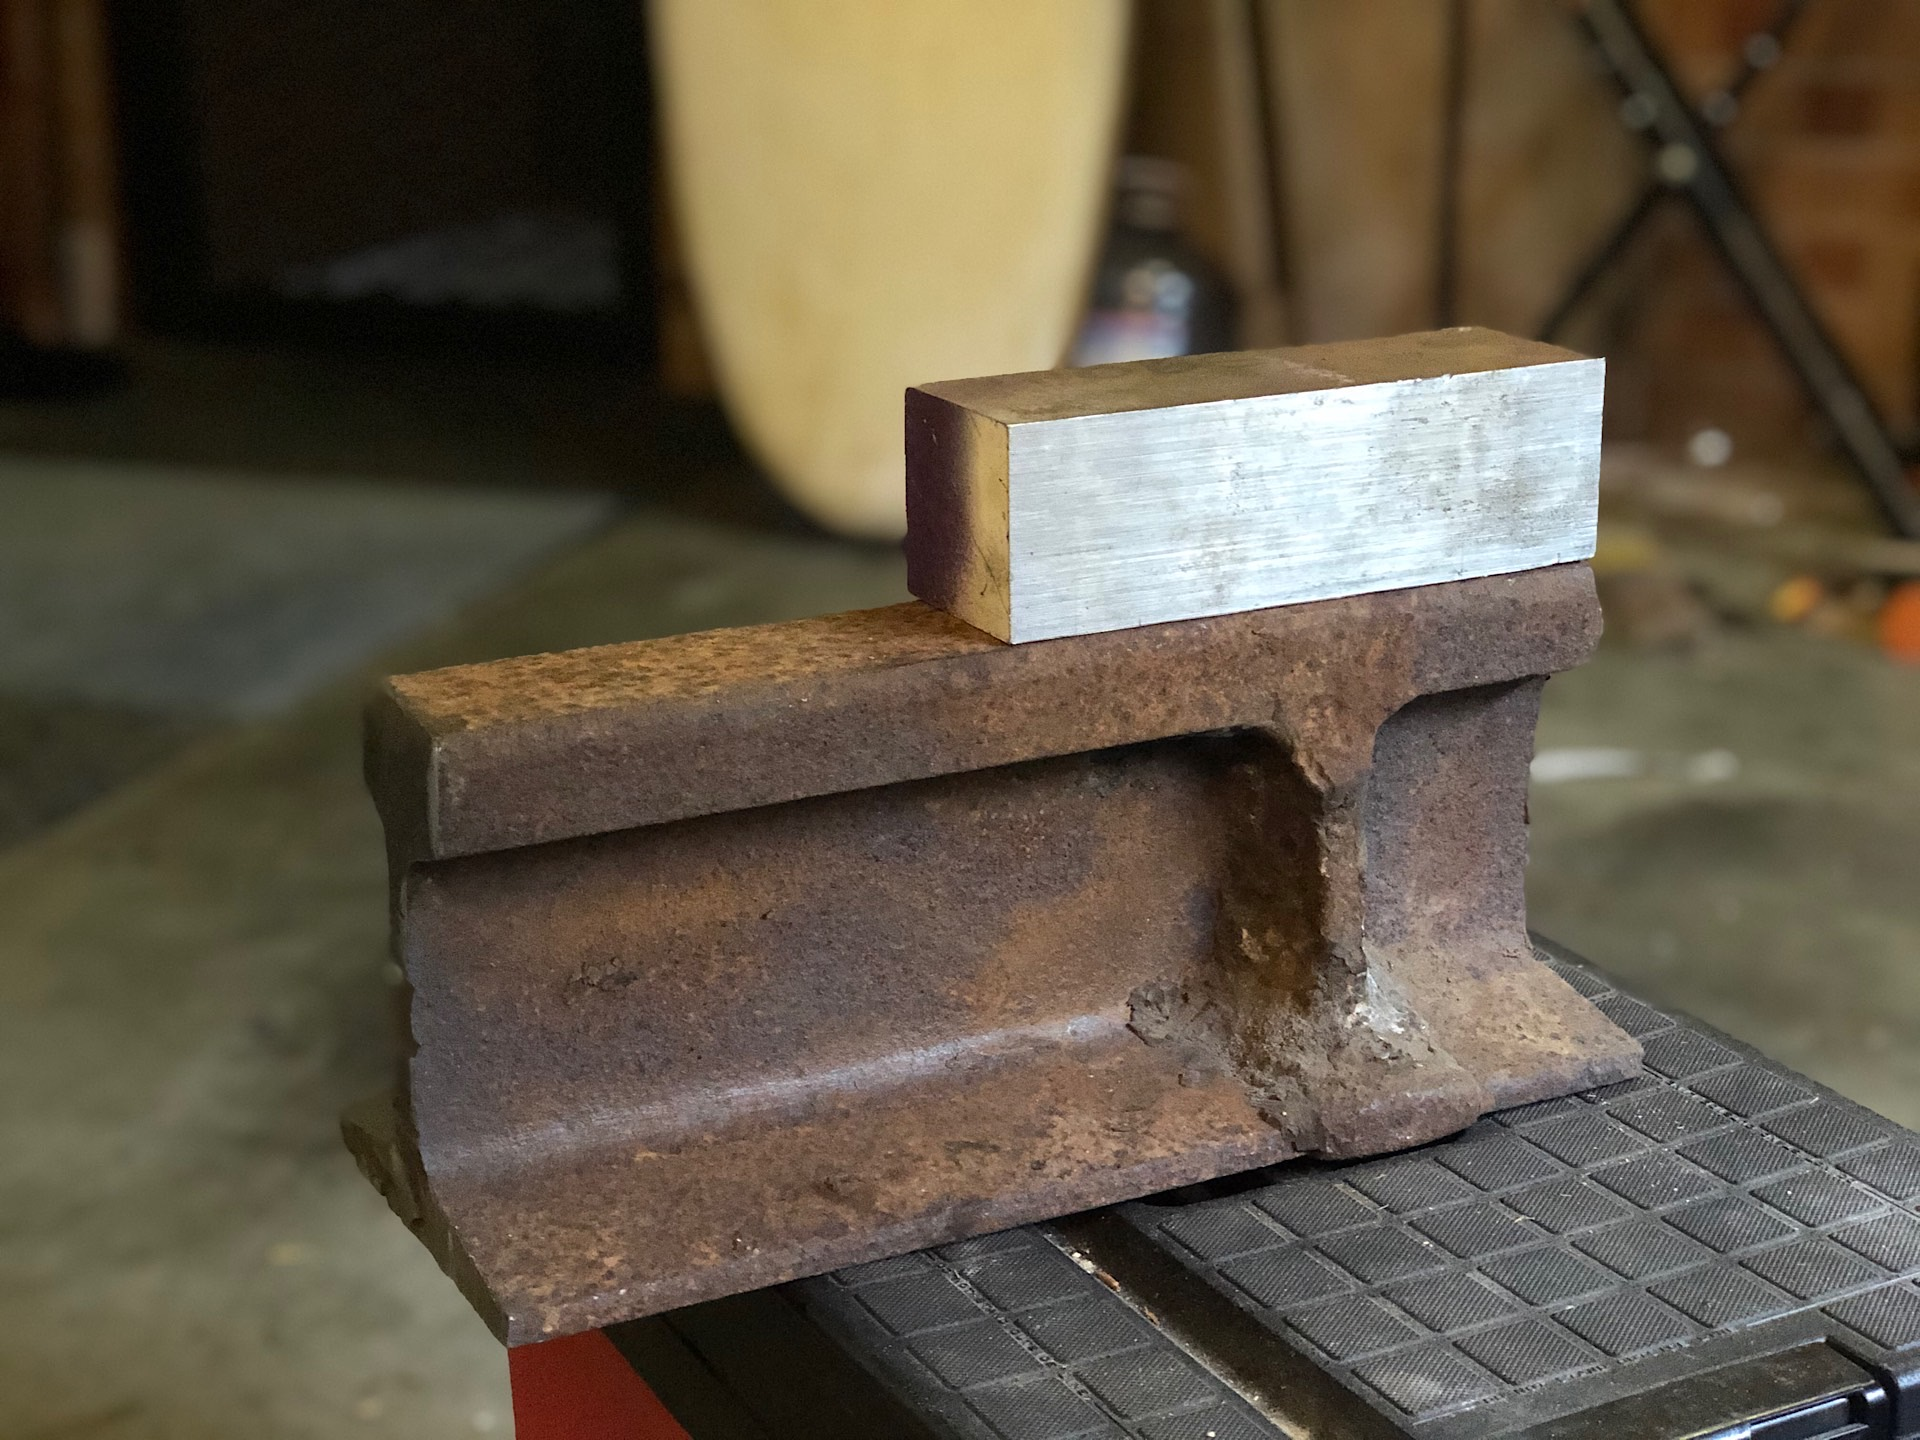 Crane rail track and piece of tool steel